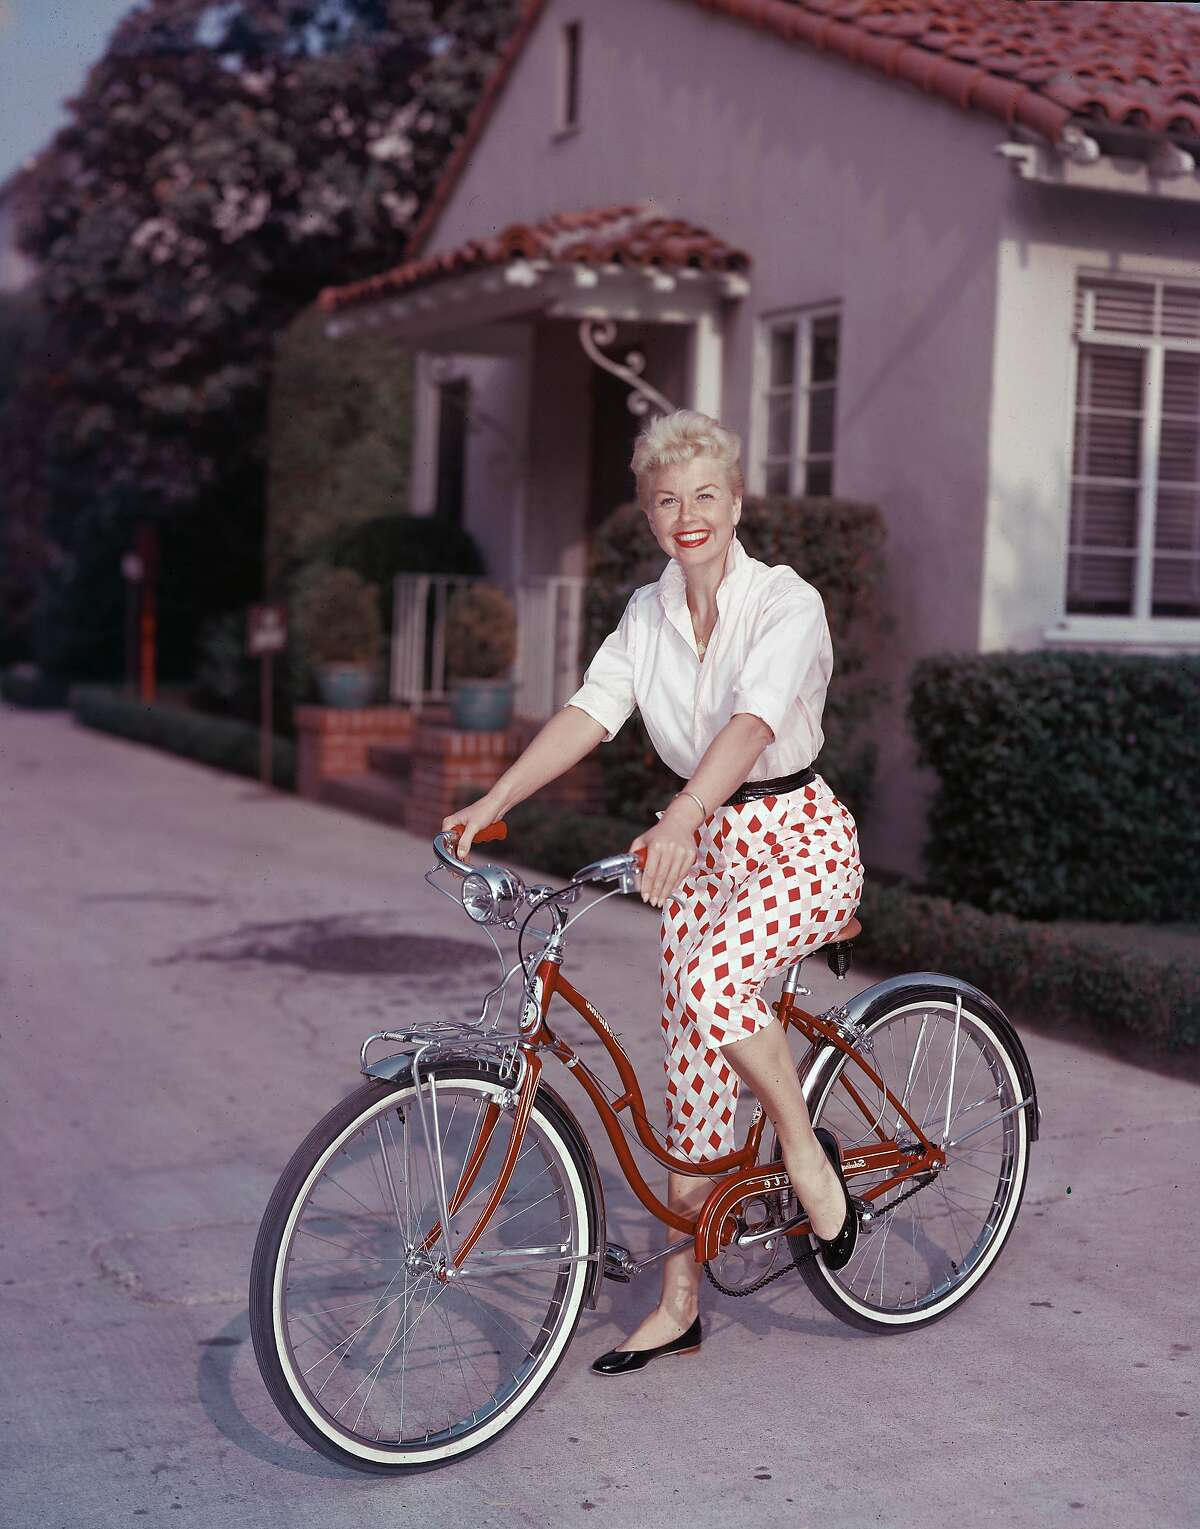 it has been announced that actress Doris Day has died at the age of 97 on May 13, 2019. American actor Doris Day poses on a red Schwinn bicycle, late 1950s. (Photo by Hulton Archive/Getty Images)